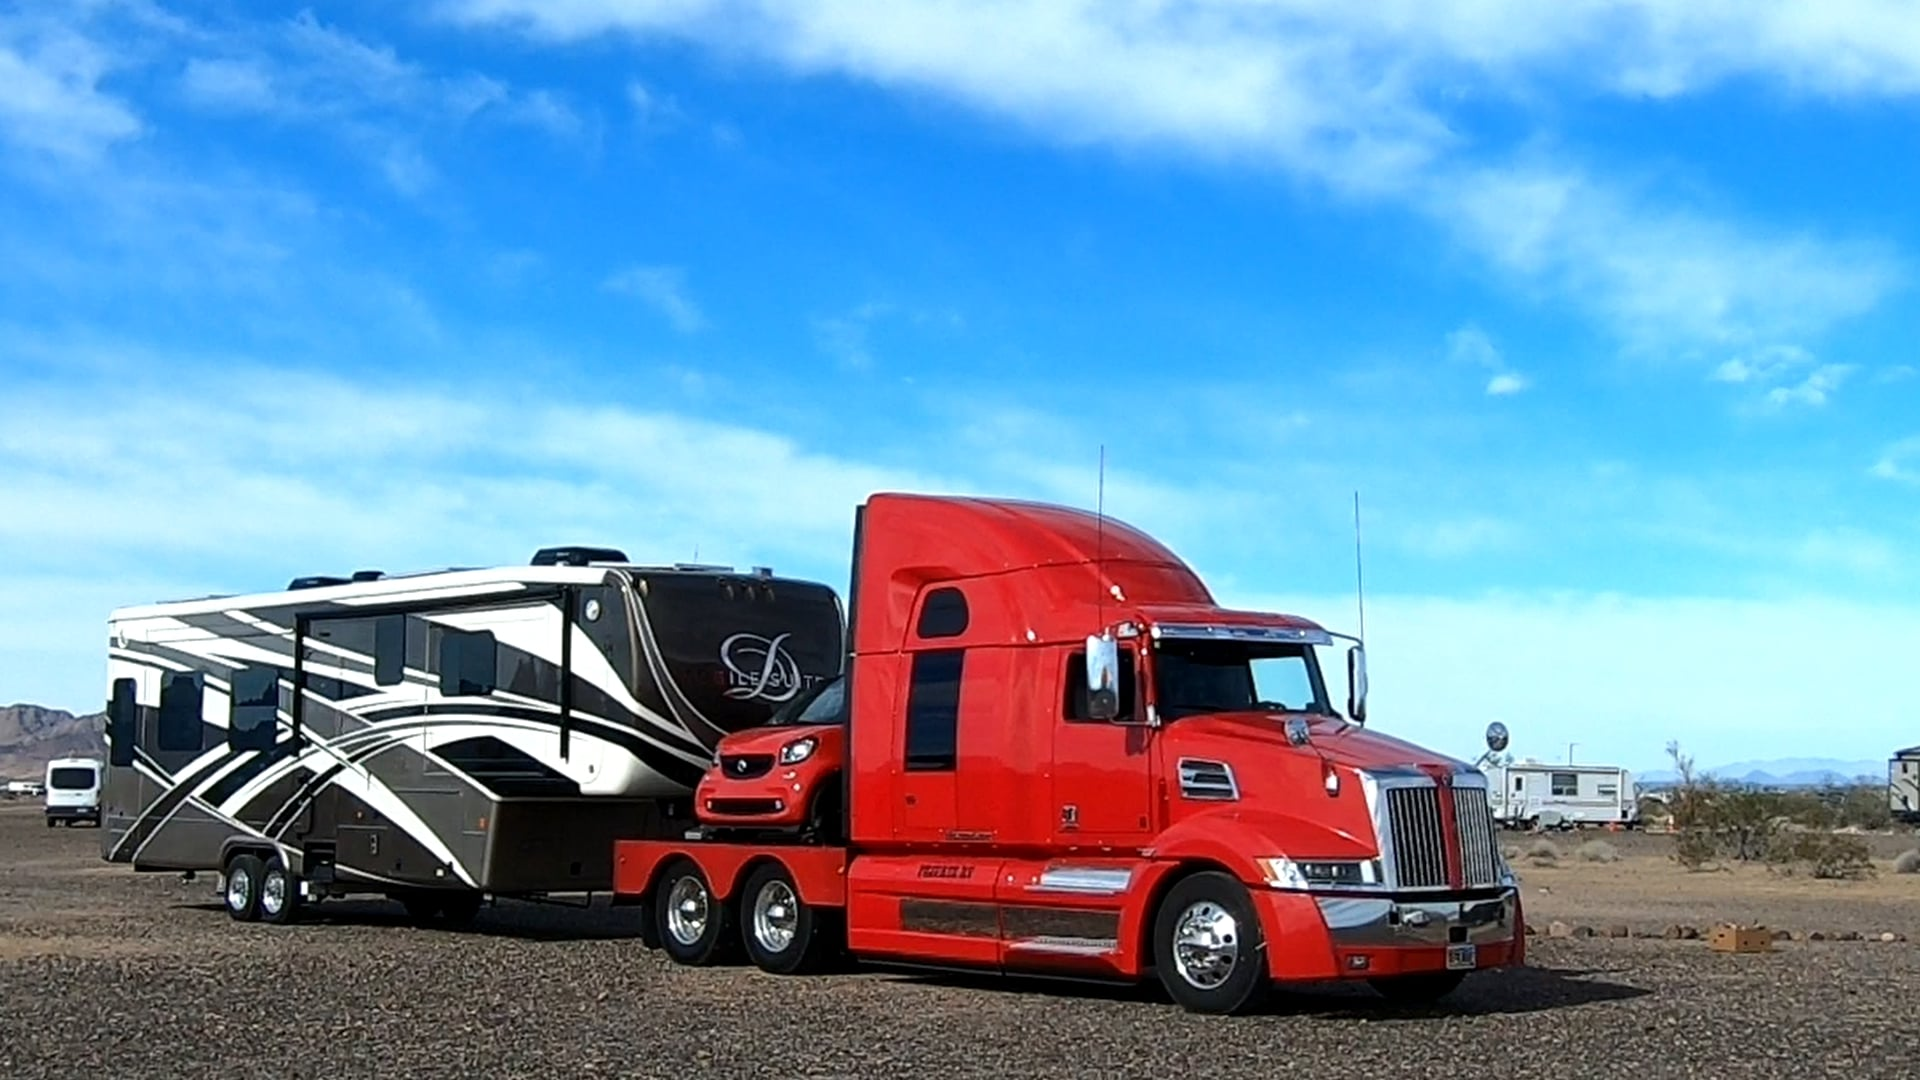 Read more about the article What Do WE Look For When Shopping For An RV?